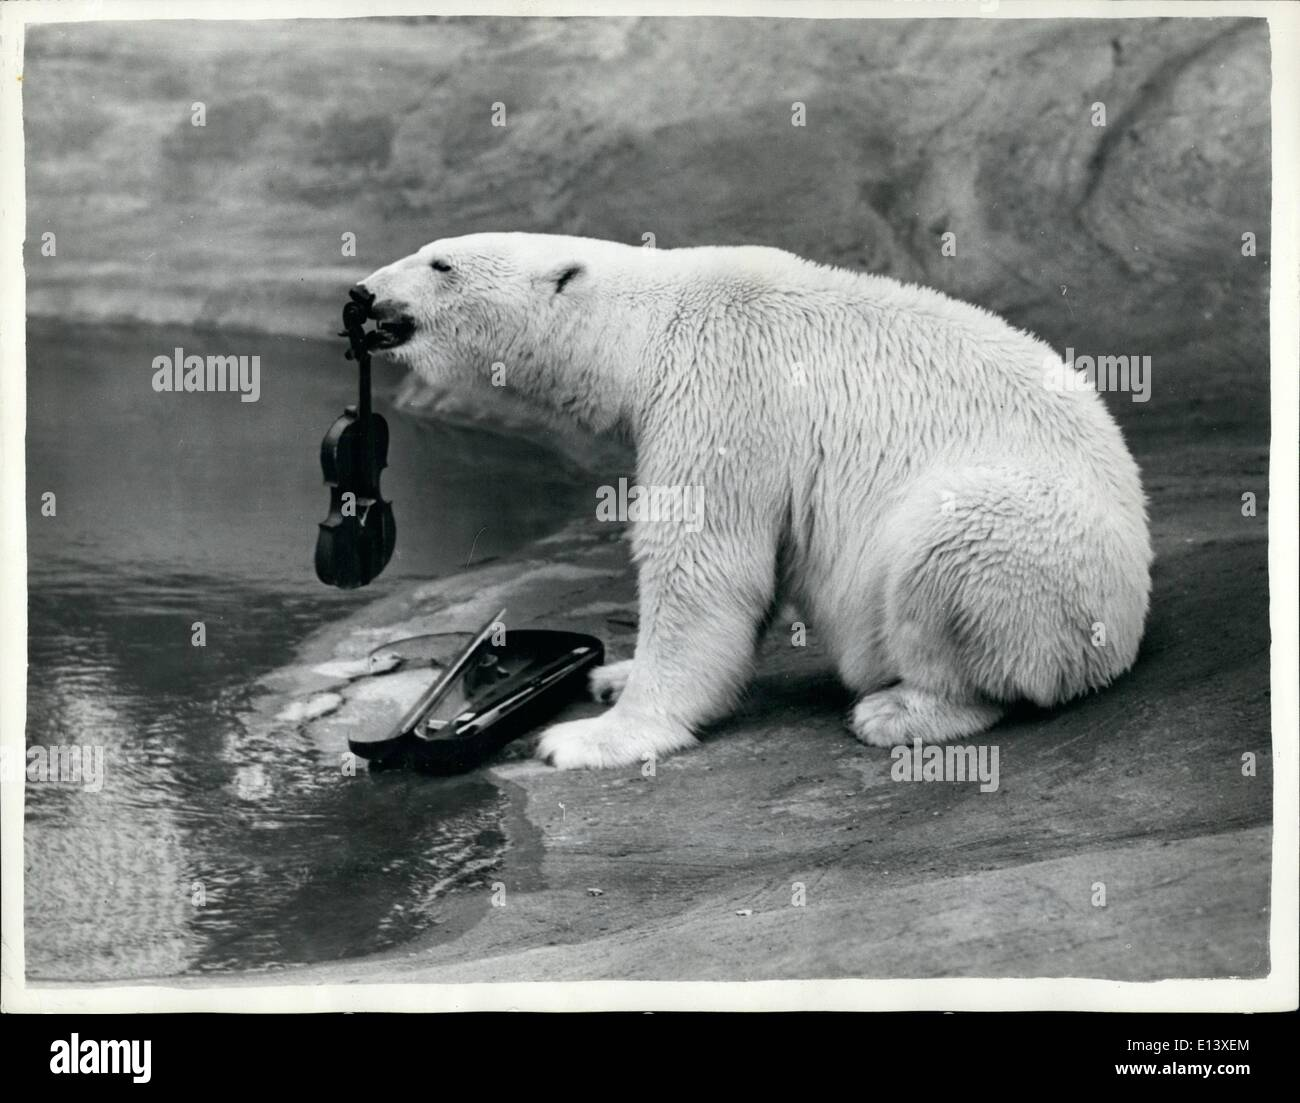 Mar. 27, 2012 - Freda Te Fiddler has Many Strings To Her Bow: Freda the polar bear was a bit non-plussed when faced with a long, black wooden box. This needed looking into. Getting the box open was quite a problem and she didn't manage it until she had taken it into the water with her. What she did discovered having opened it, was a violin and Freda being a musically minded bear, proceeded to play. And what did Freda plan? Why the Water Music suit, of course, and for an encore? probably Night on the Bear Mountain! Ah, now, that's what was in the box, this strange, waited bit of wood - Stock Image